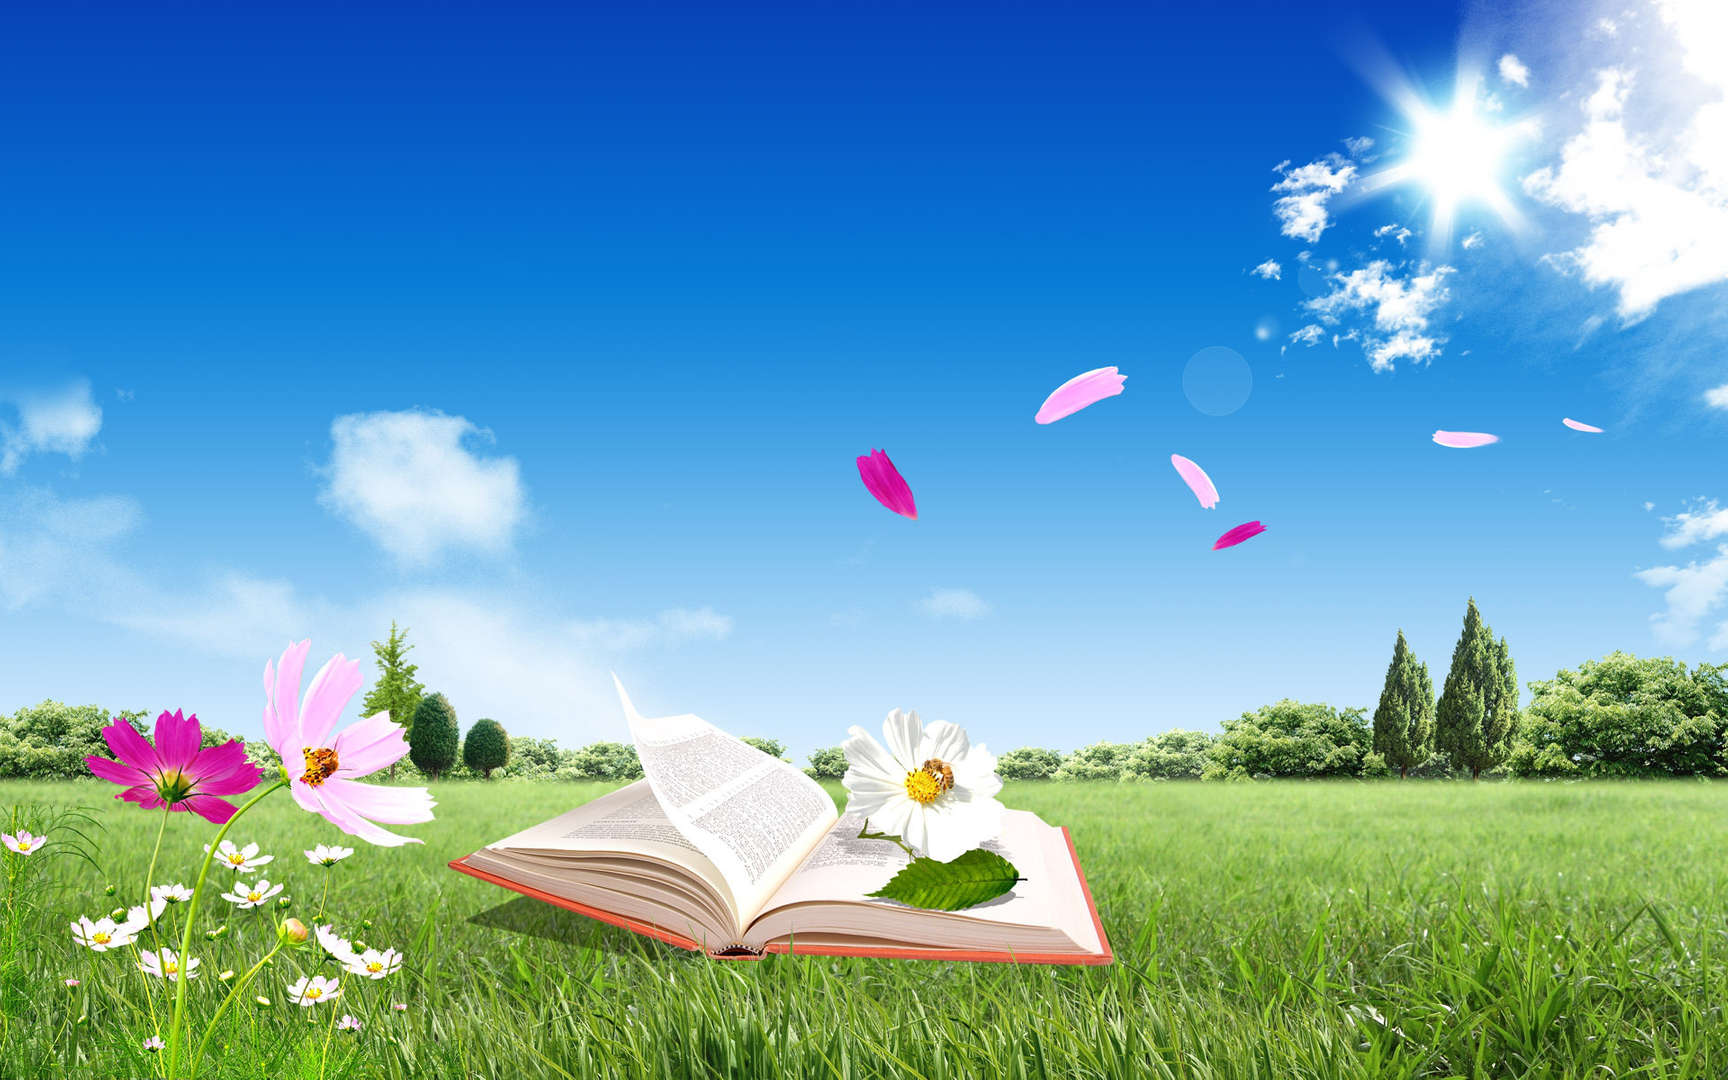 book open outside in a field on grass